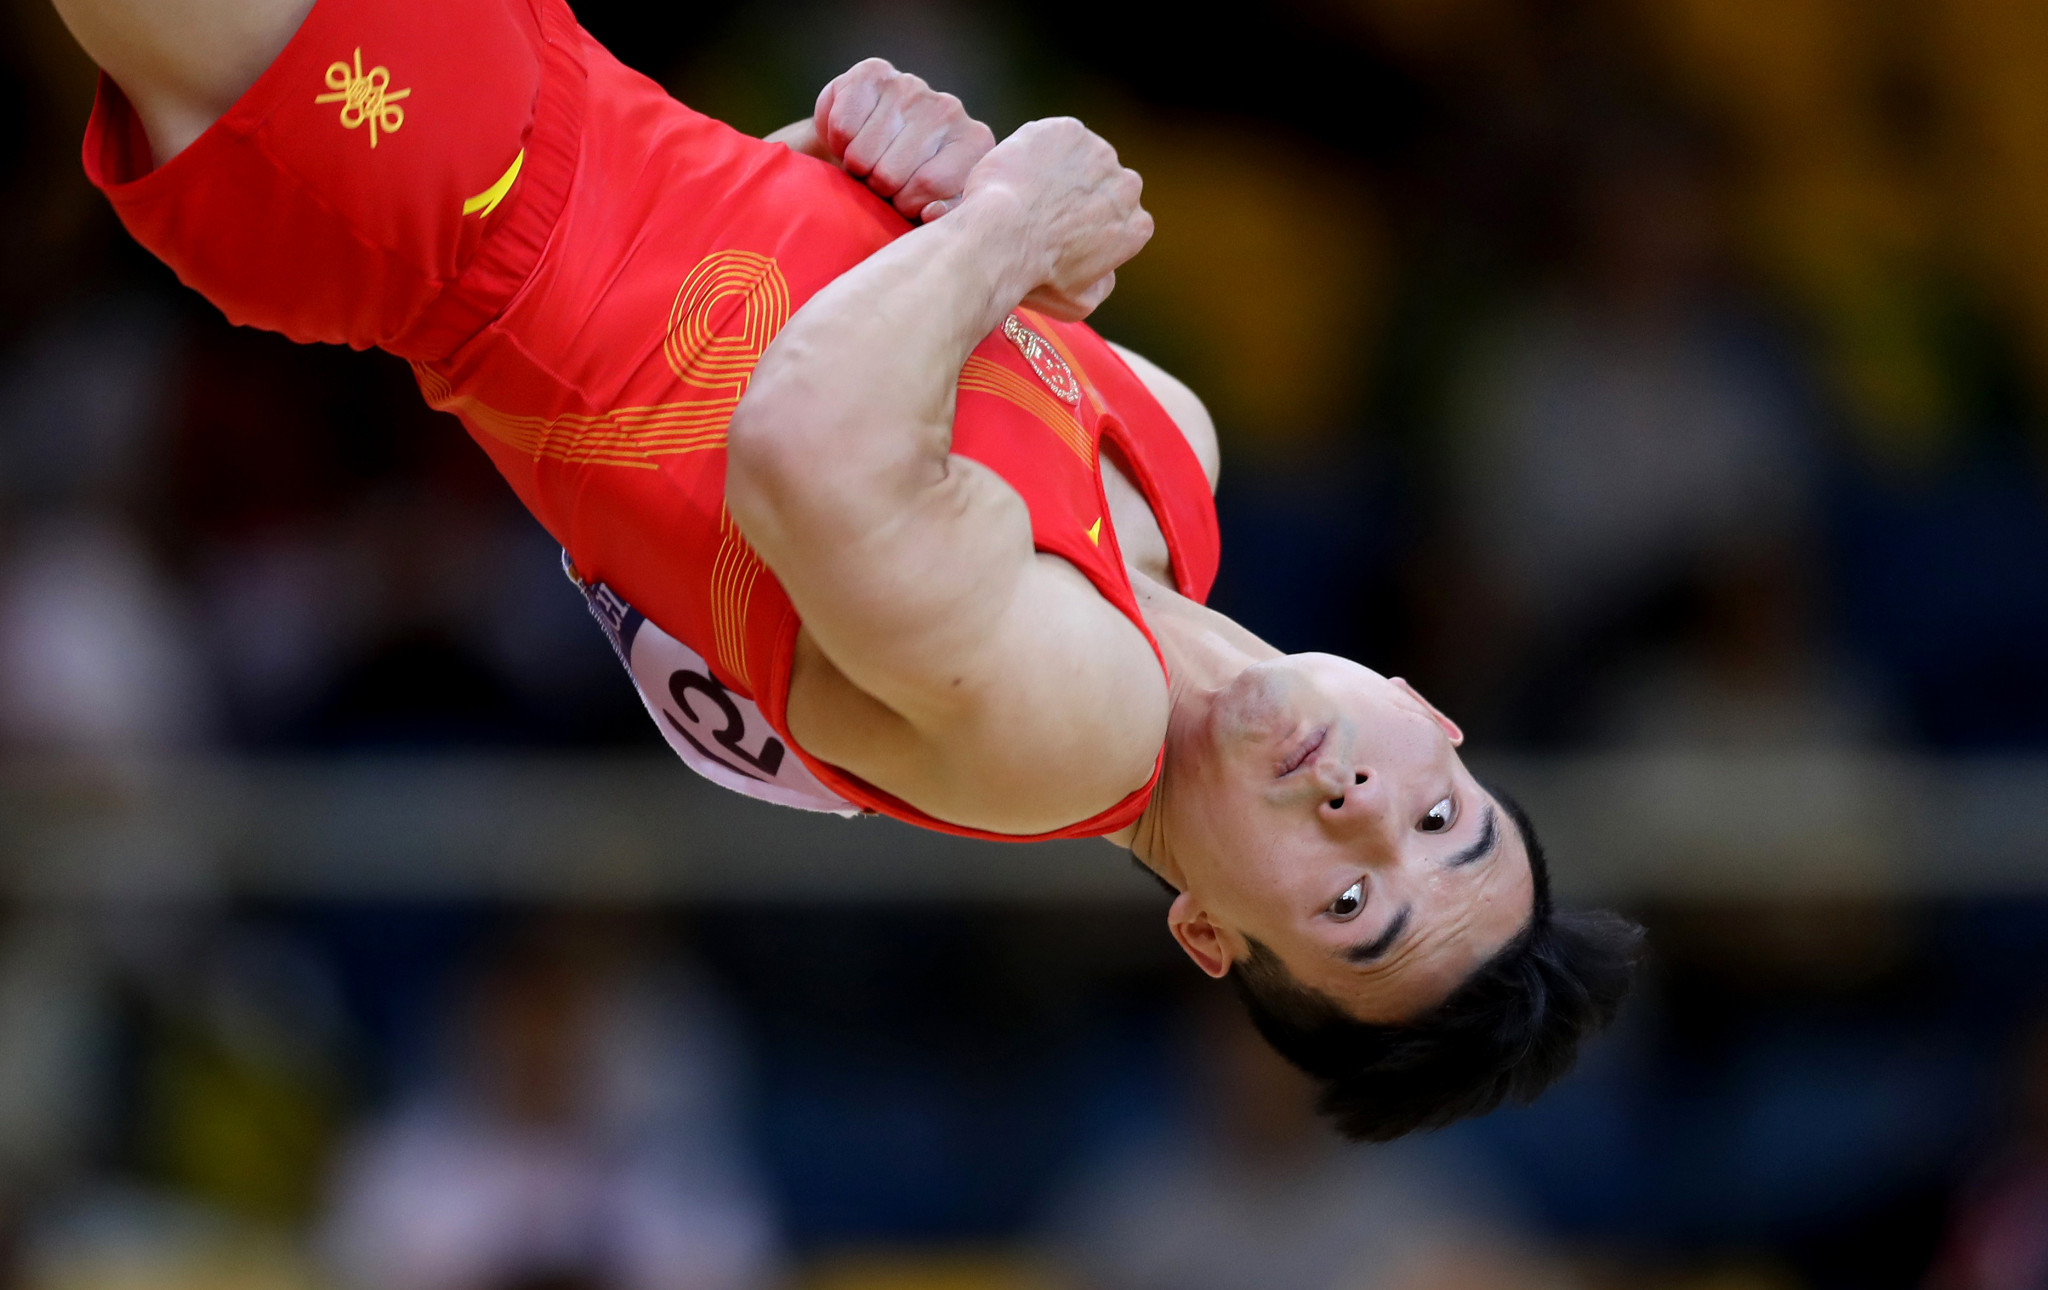 Shudi Deng impressed for the Chinese on the floor ©Getty Images